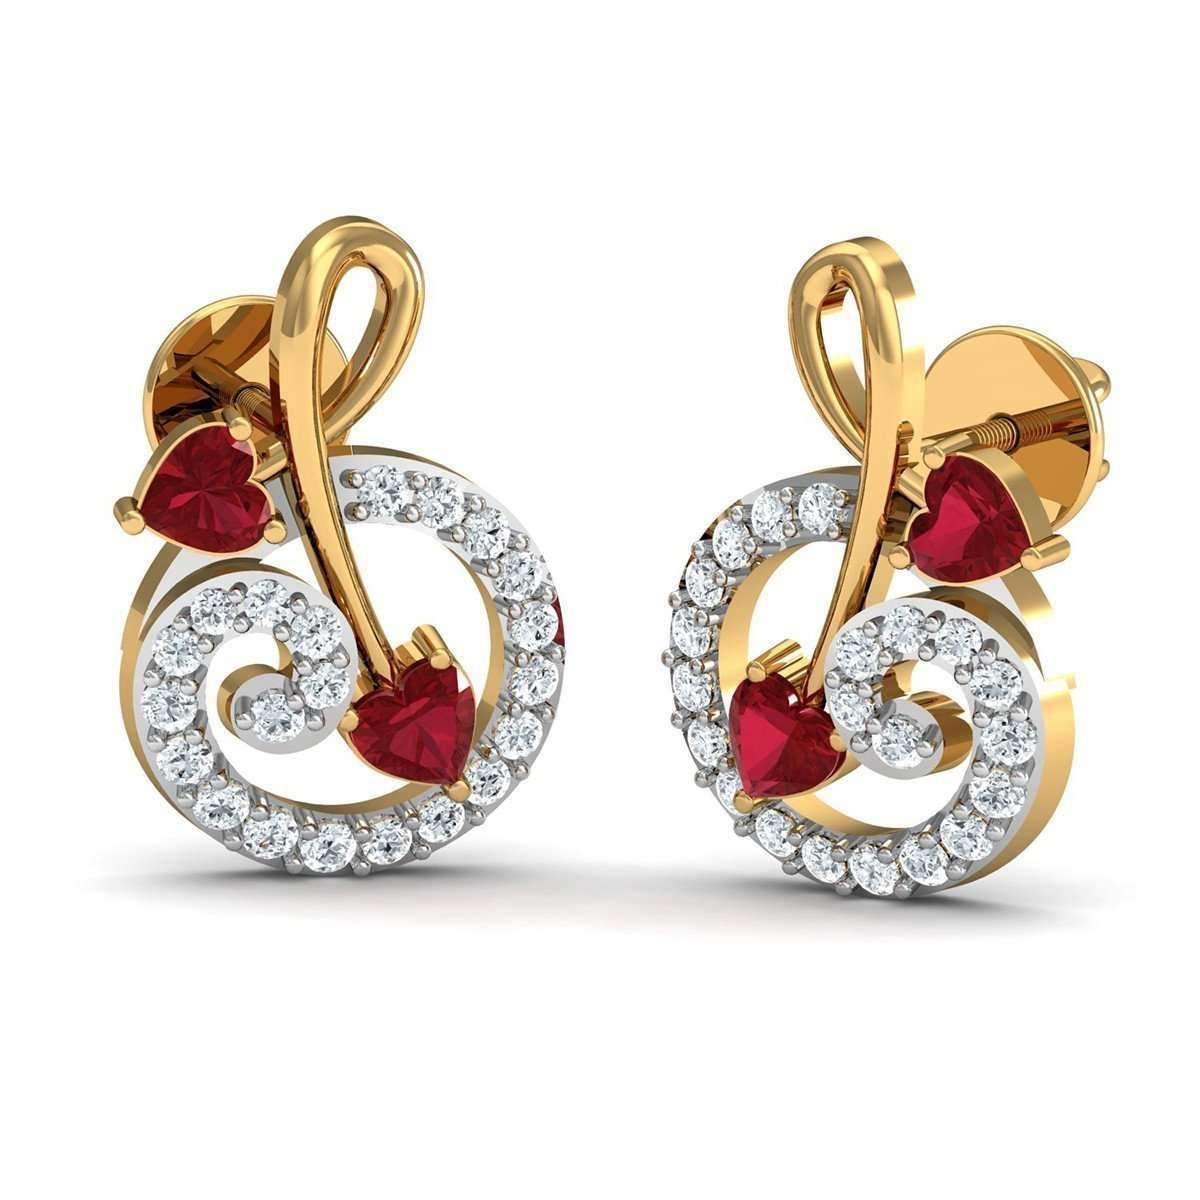 Diamoire Jewels 18kt Yellow Gold Earrings With Pear Cut Rubies and Round Shape Diamonds Ney1V4